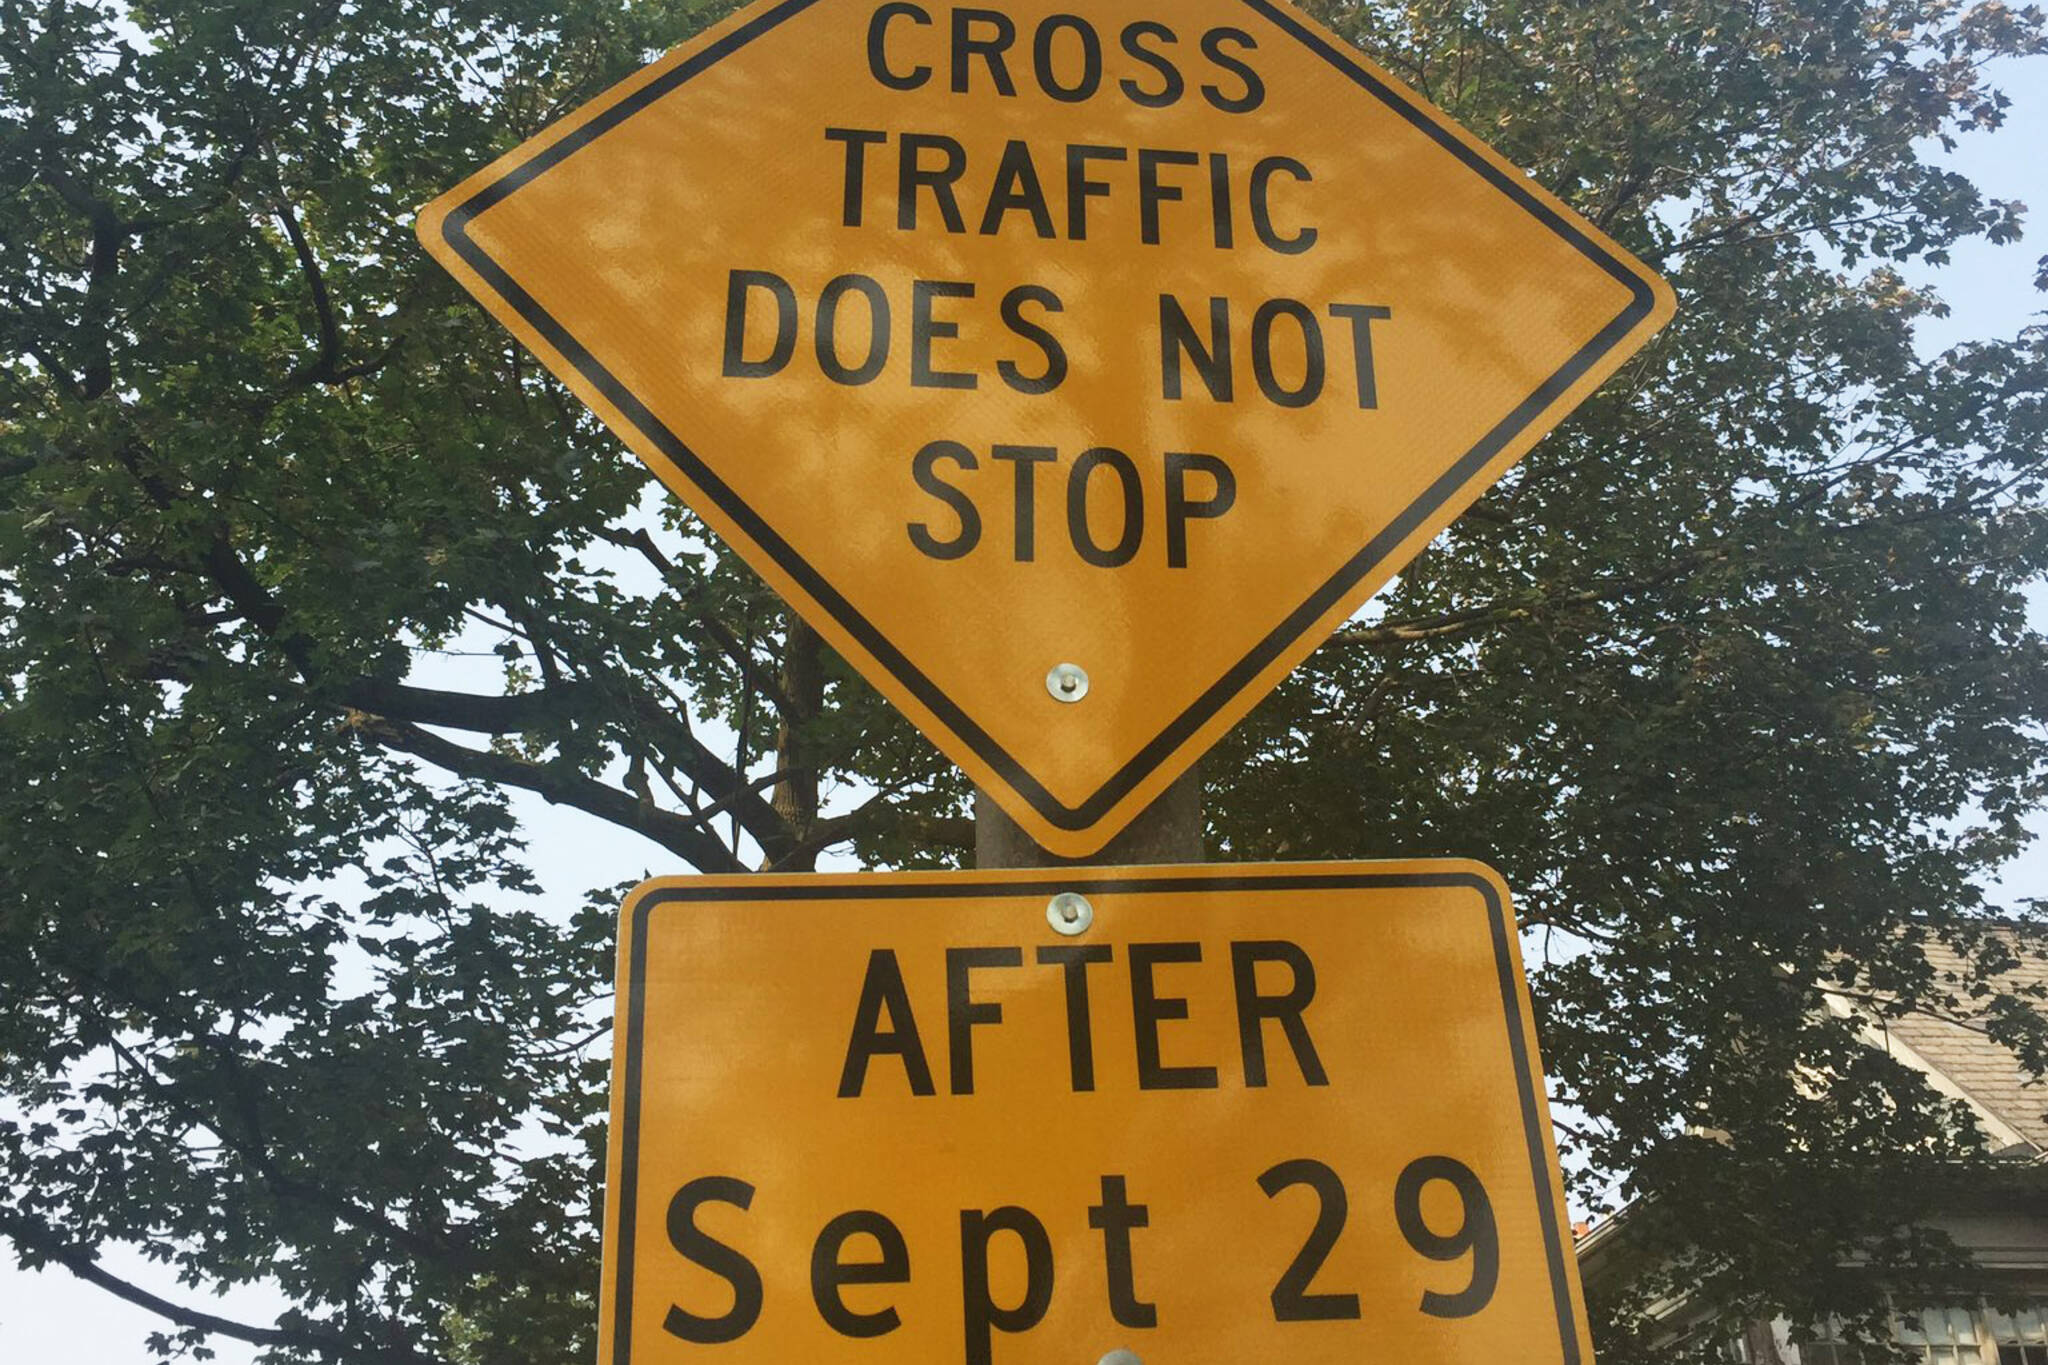 rosedale stop sign controversy